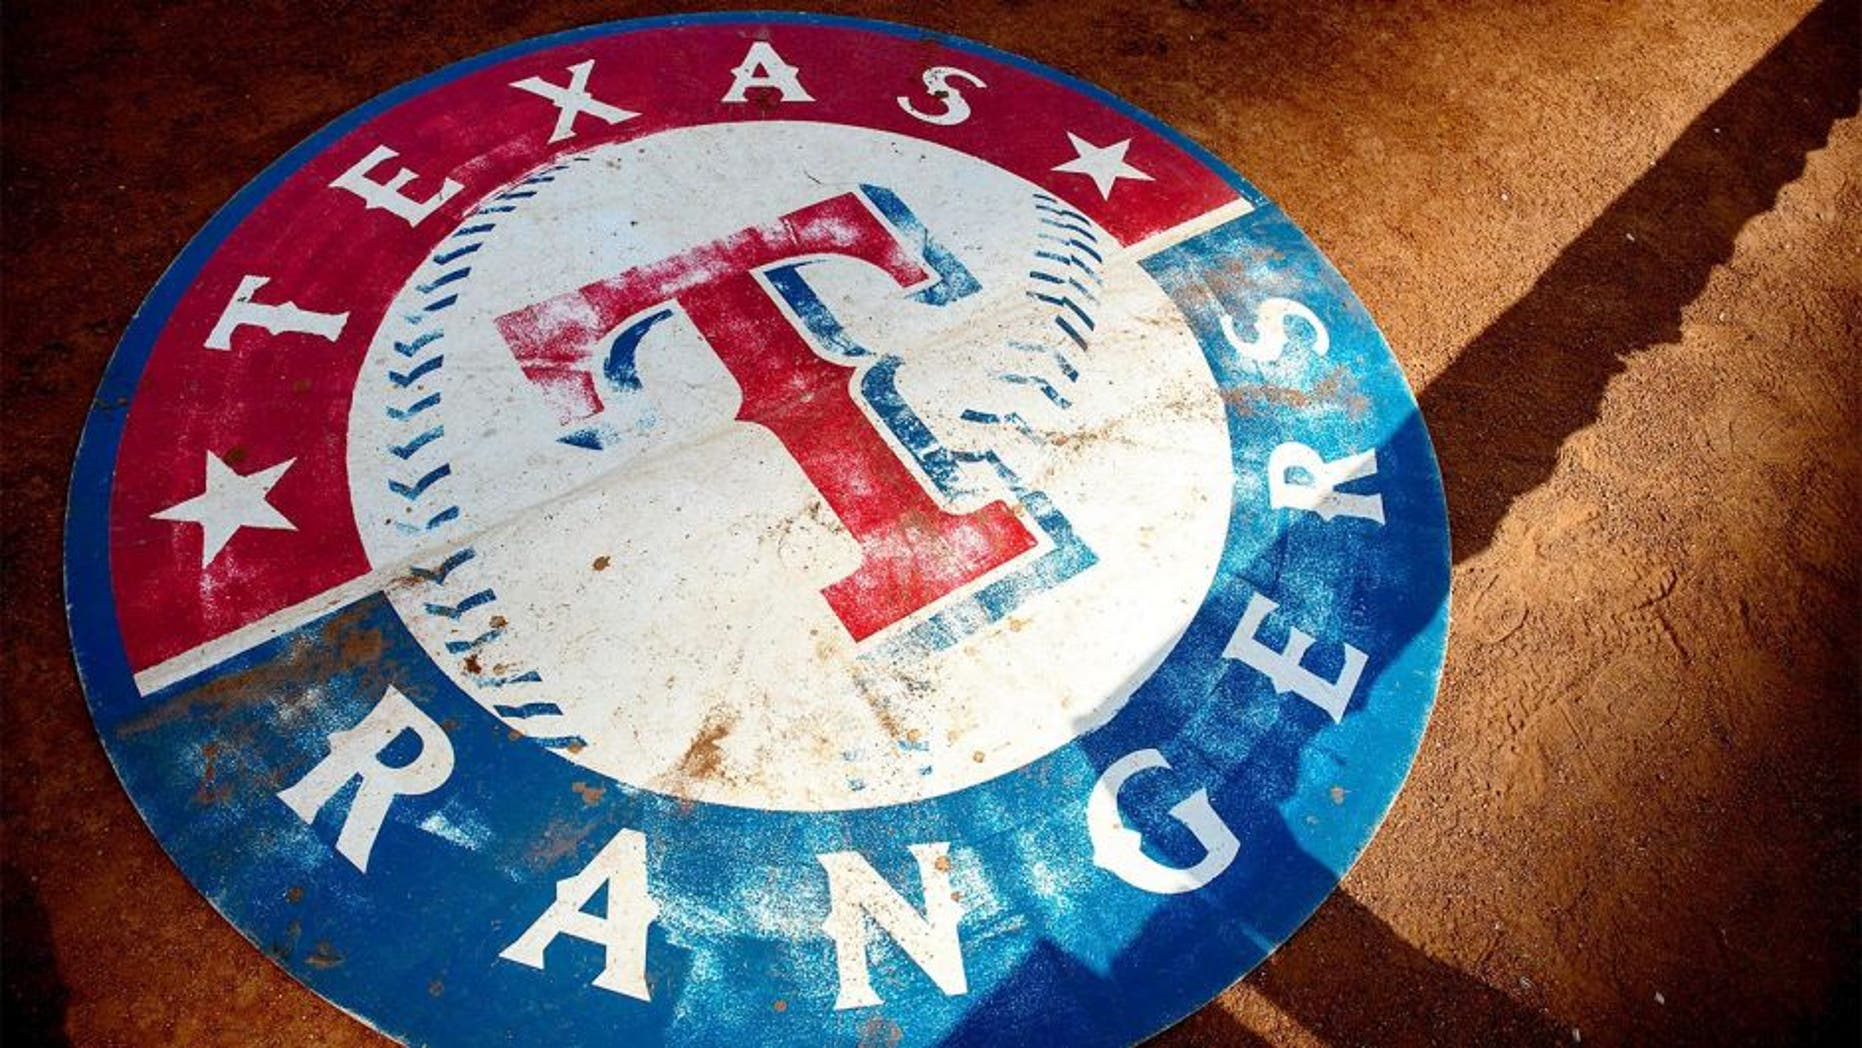 Sep 5, 2014; Arlington, TX, USA; A view of the Texas Rangers logo before the game between the Rangers and the Seattle Mariners at Globe Life Park in Arlington. Mandatory Credit: Jerome Miron-USA TODAY Sports